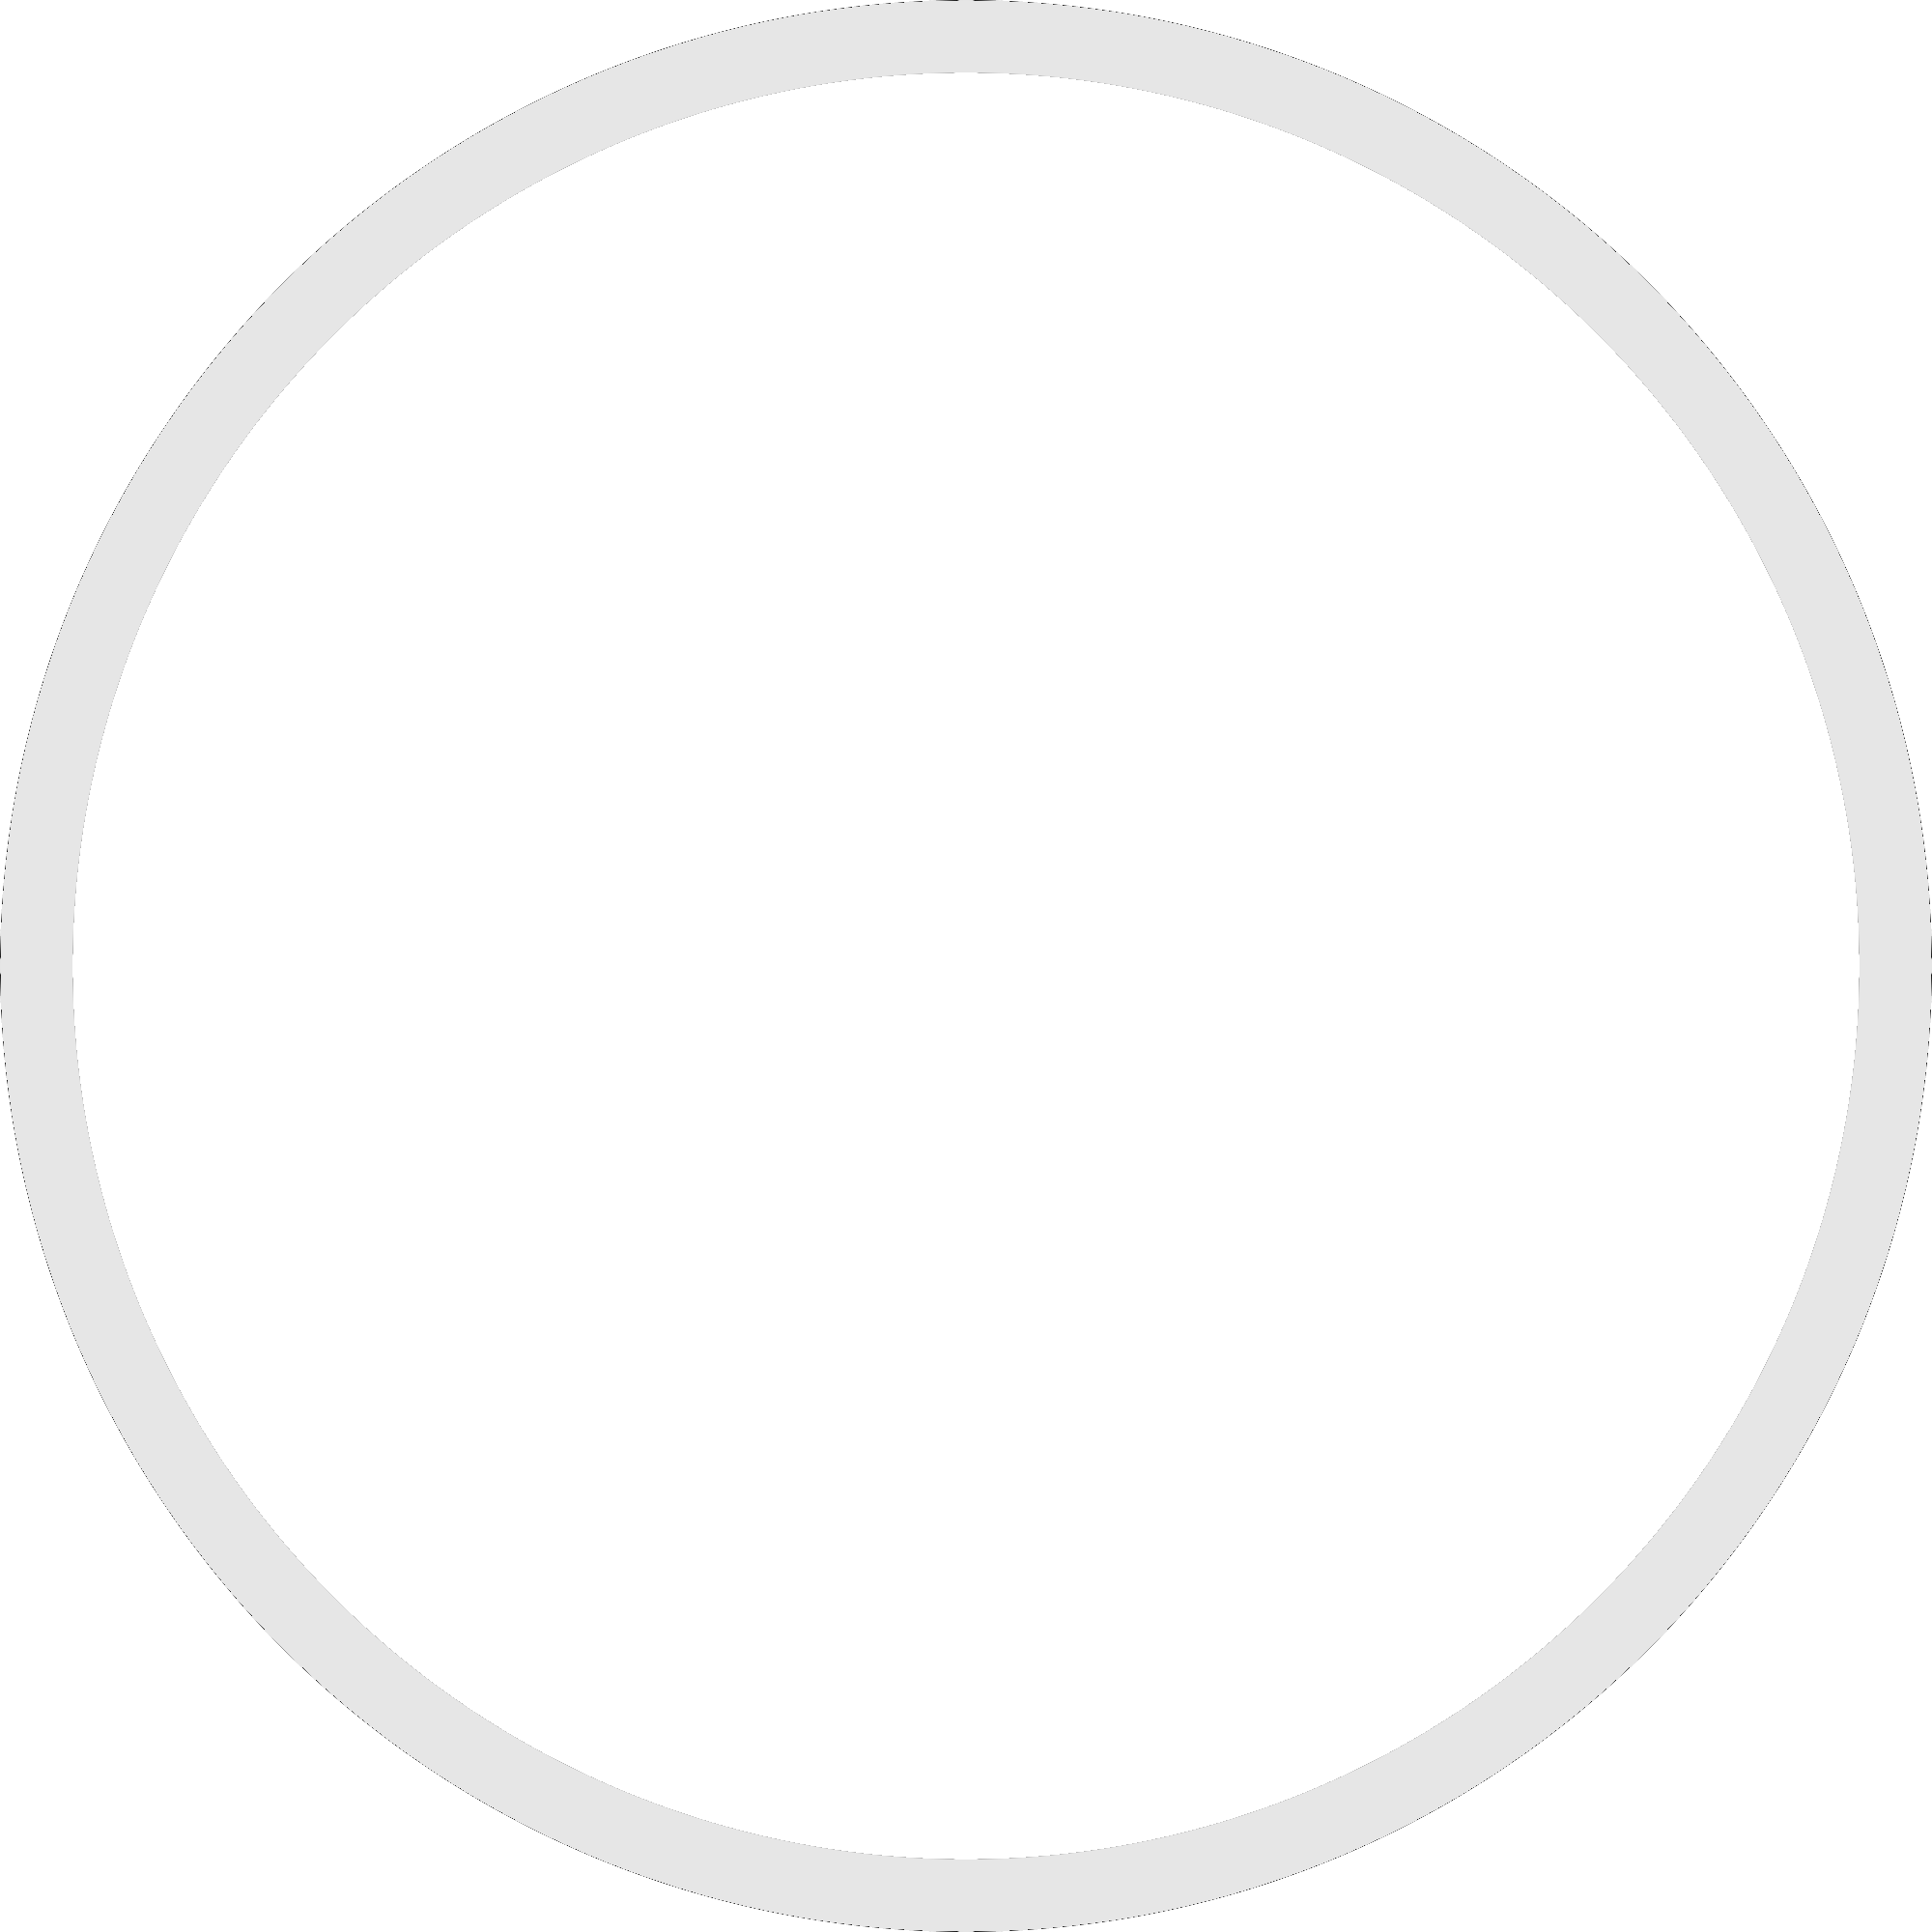 Online Coaching SportSupport-24